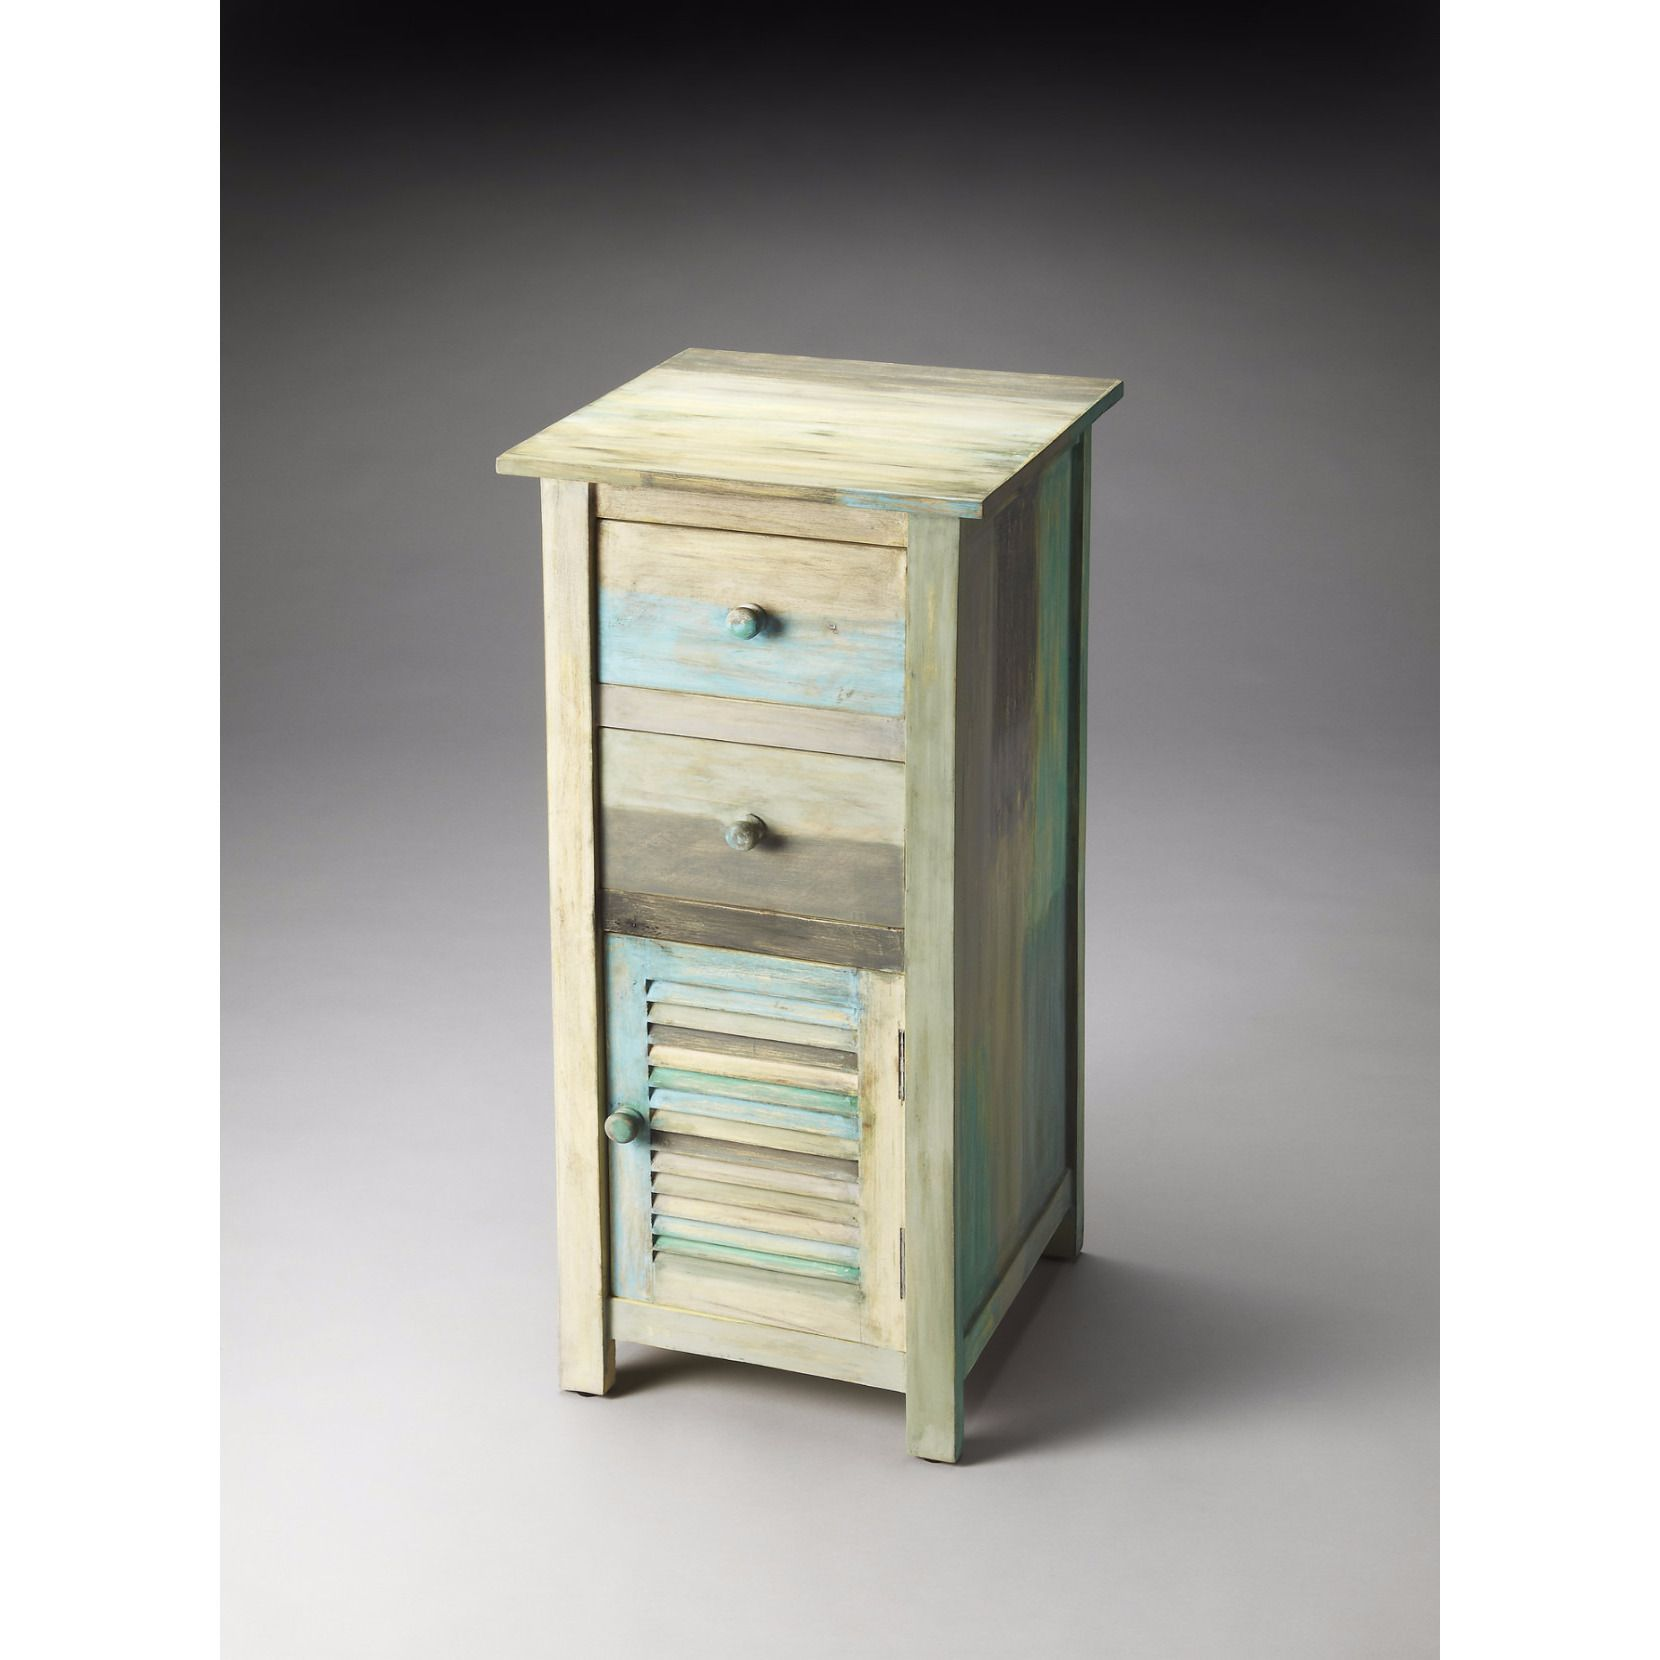 BUTLER FIONA PAINTED RUSTIC ACCENT CHEST